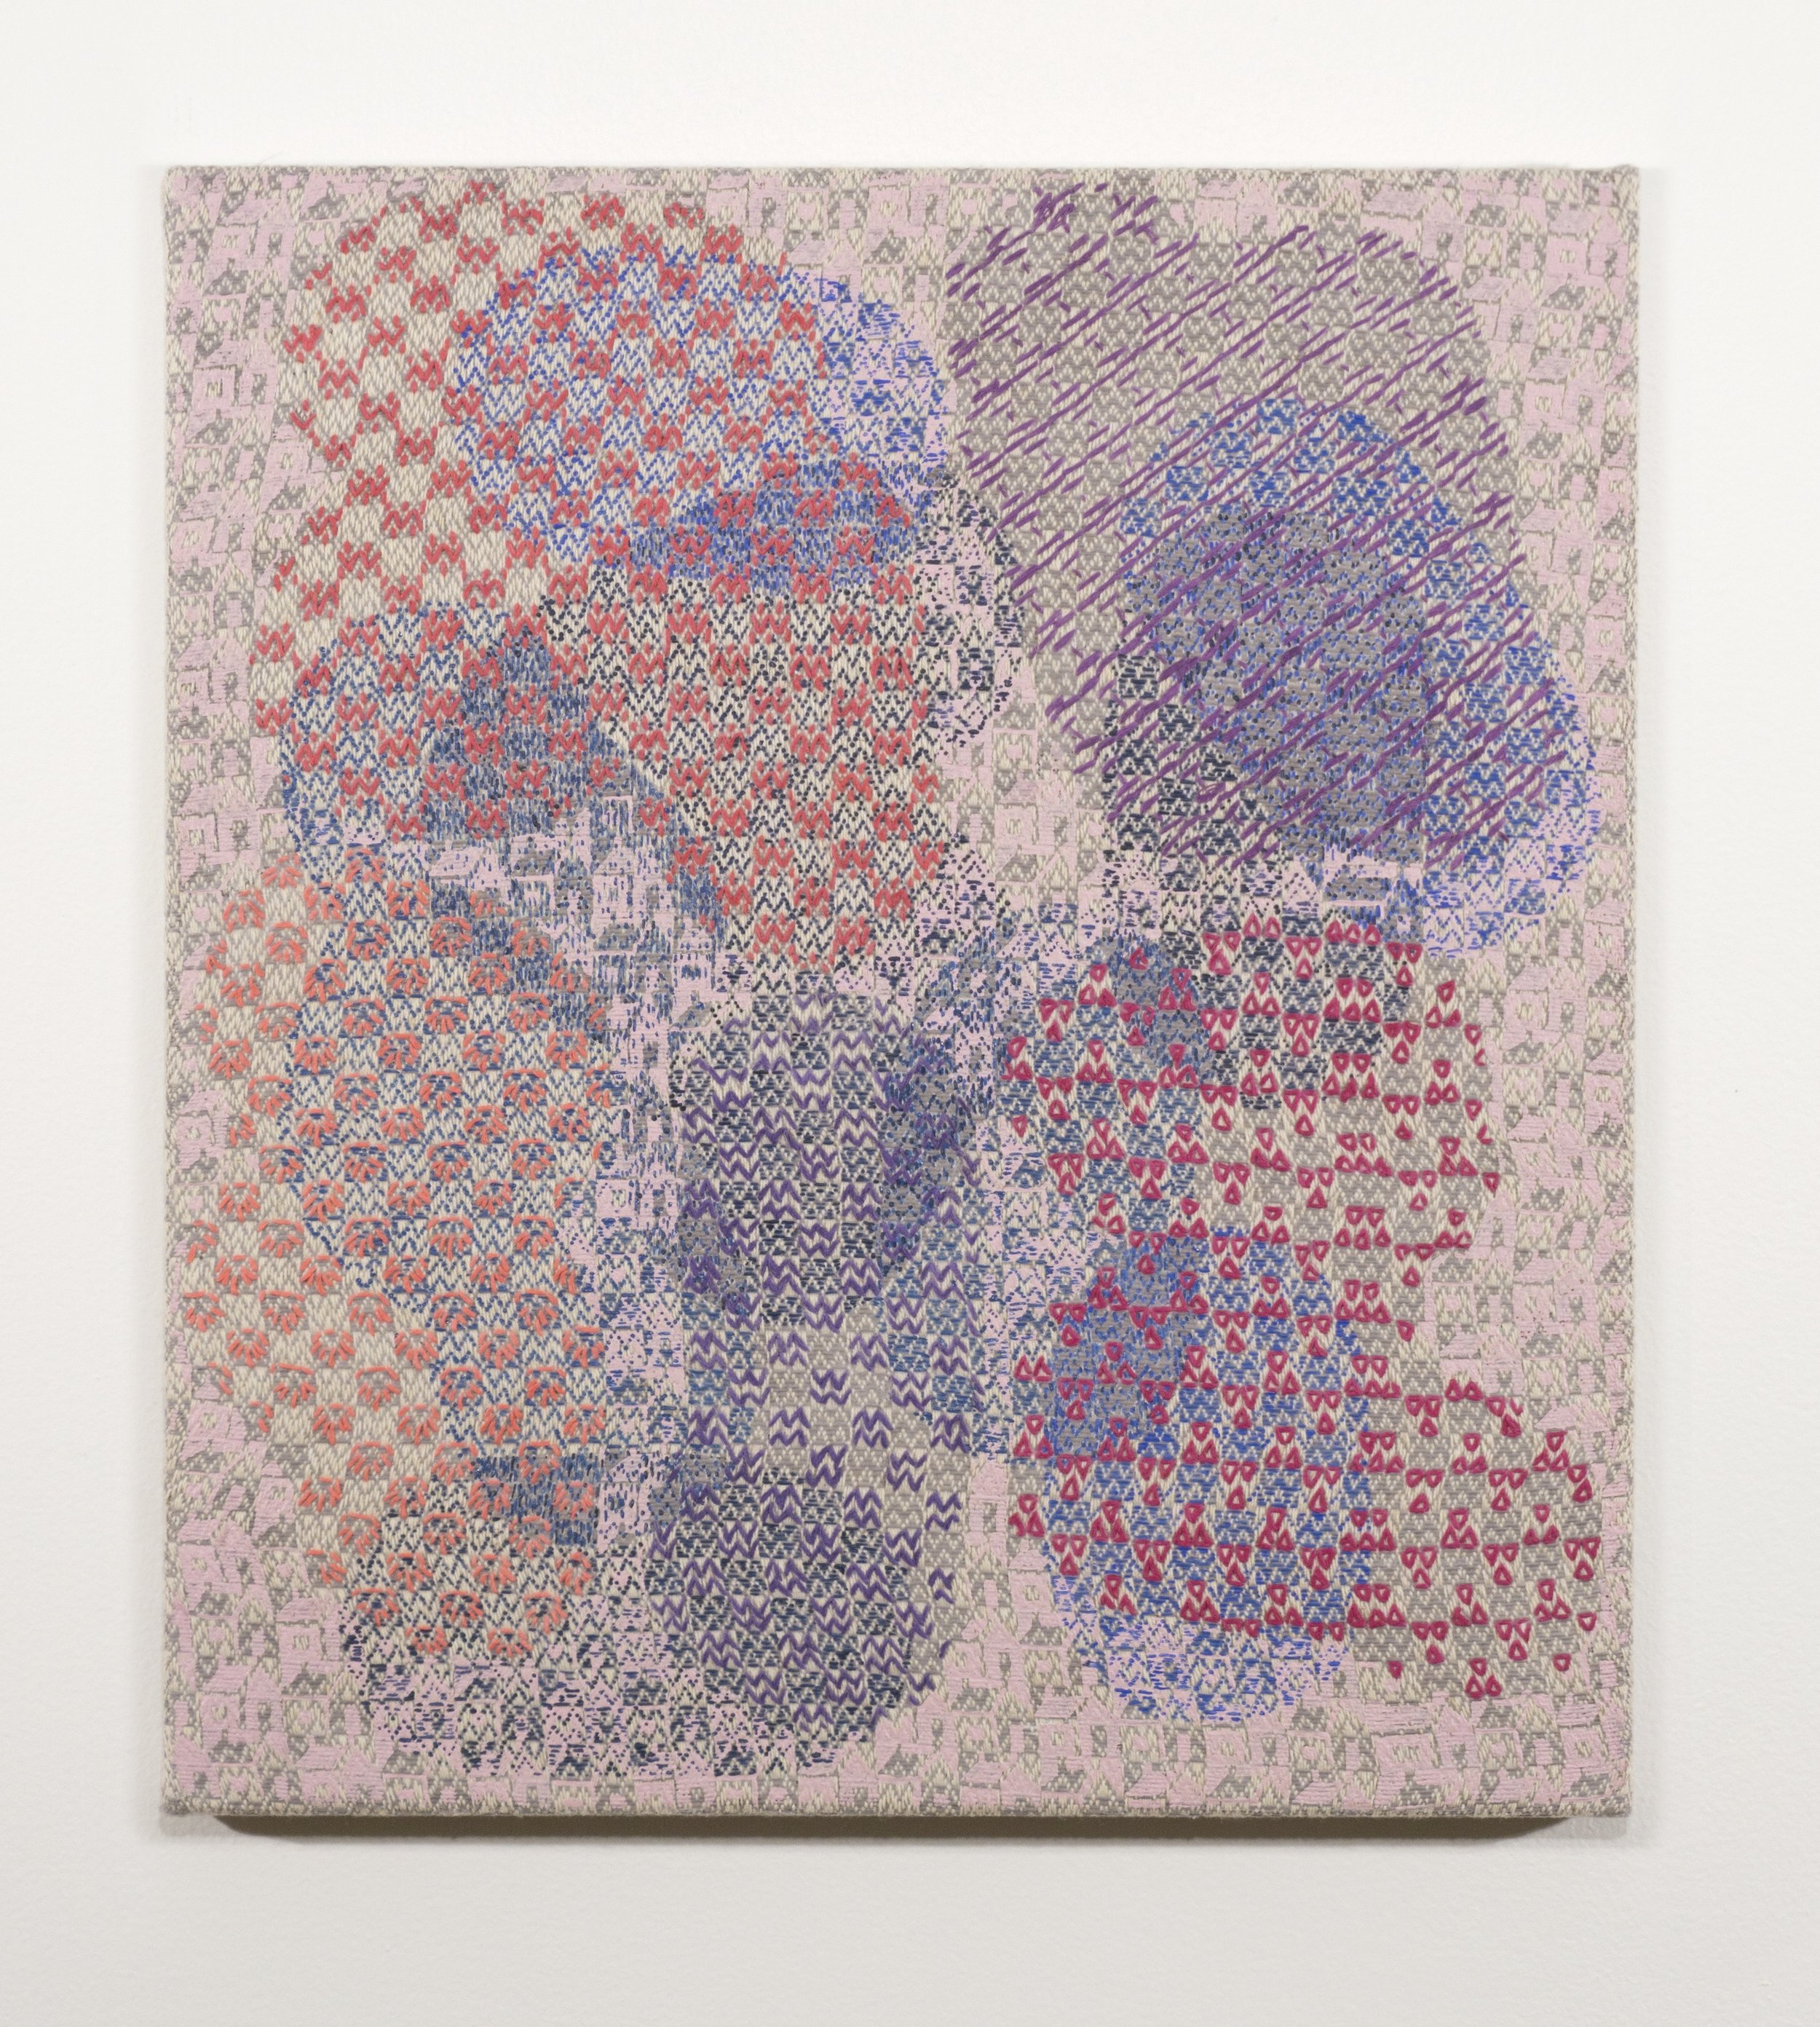 Mark Barrow & Sarah Parke  Future Homemakers of America , 2019 Acrylic and Embroidery on Hand-Loomed Linen 17 ¾ × 15 ¾ inches (45.09 × 40.01 cm)